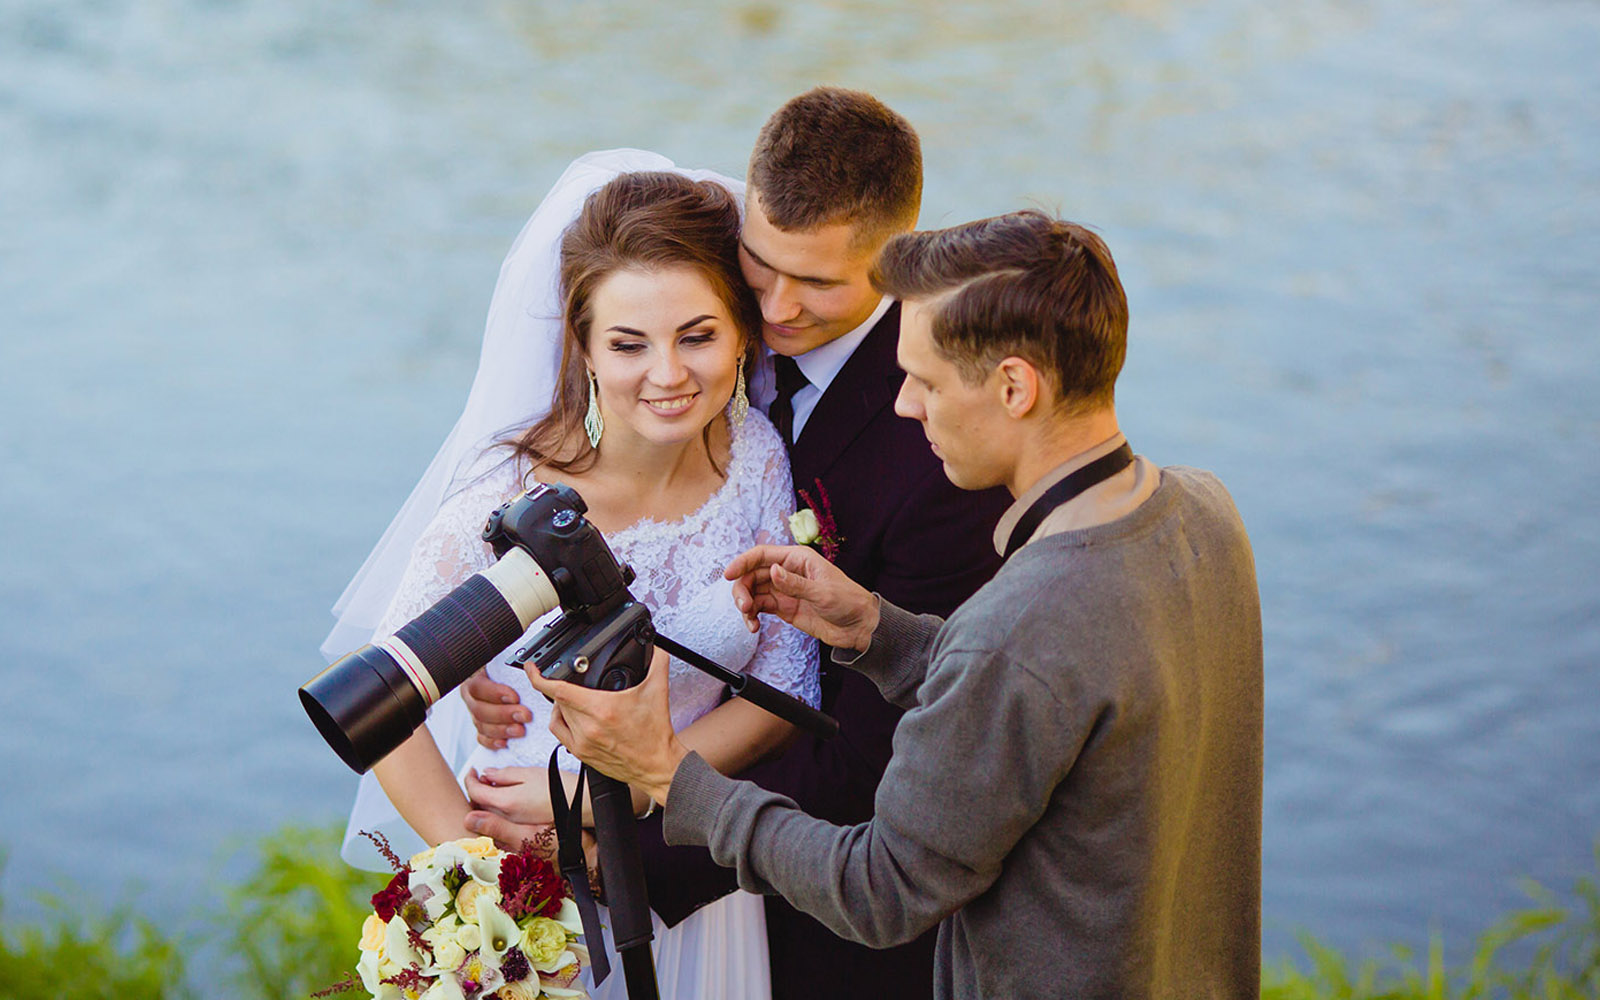 Wedding photographer reviewing photos with bride and groom